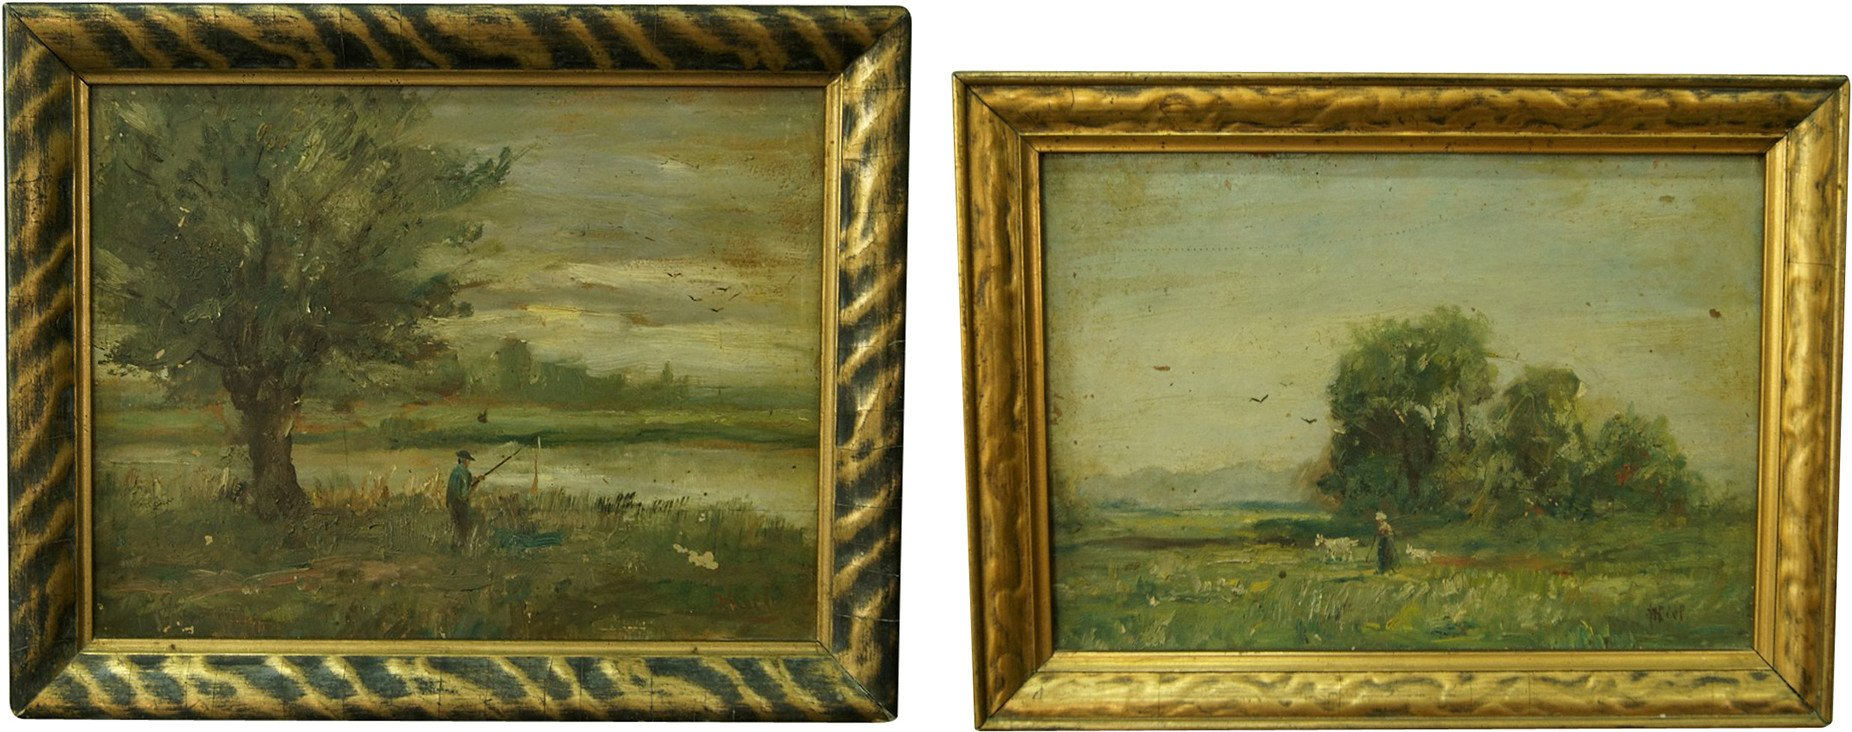 Pair of Paintings by H. Kiel, 1928